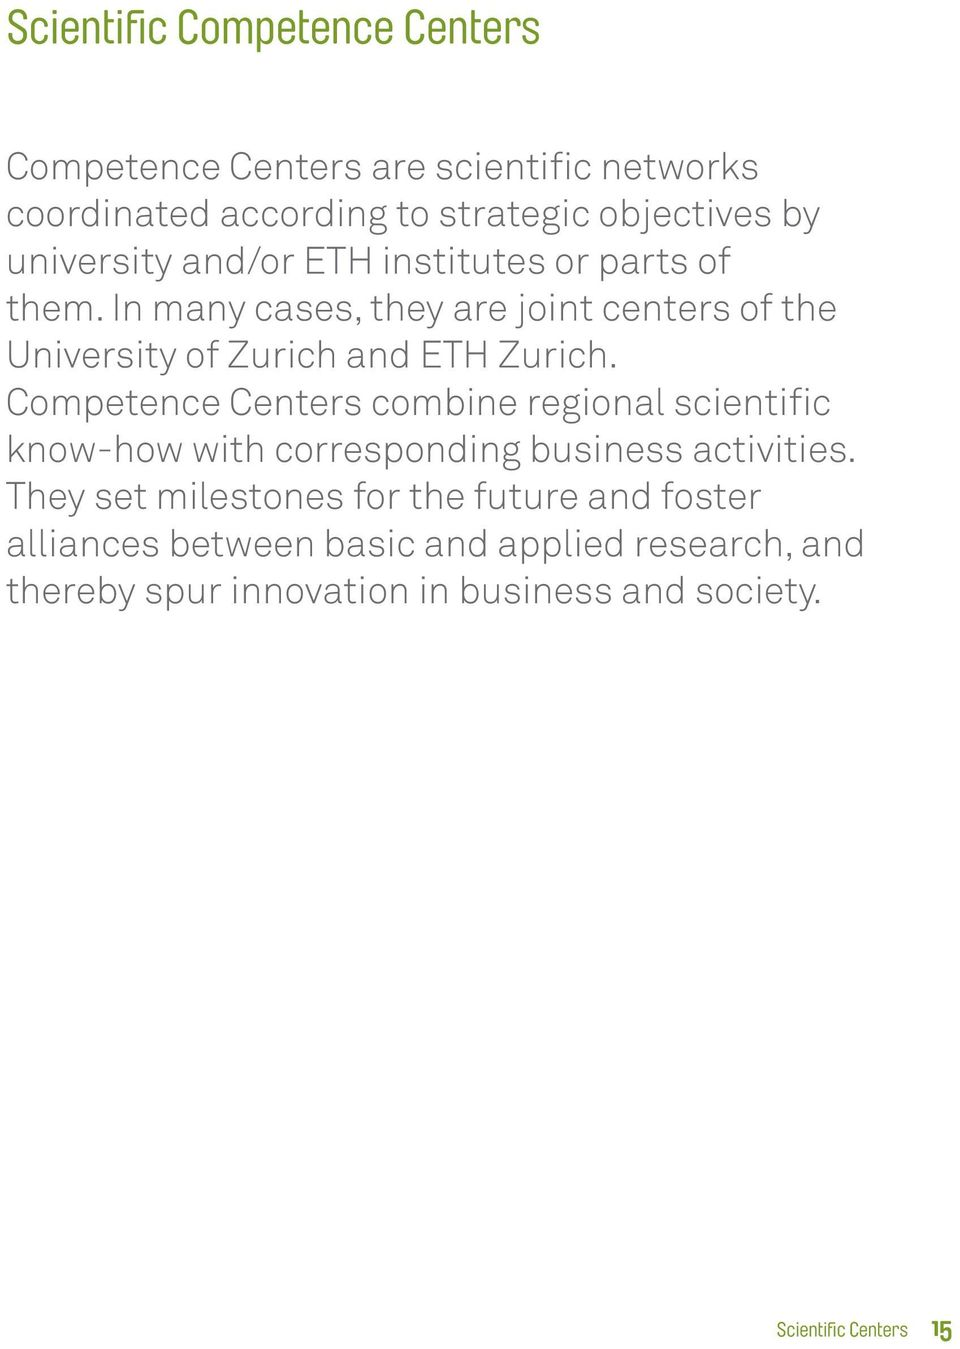 In many cases, they are joint centers of the University of Zurich and ETH Zurich.